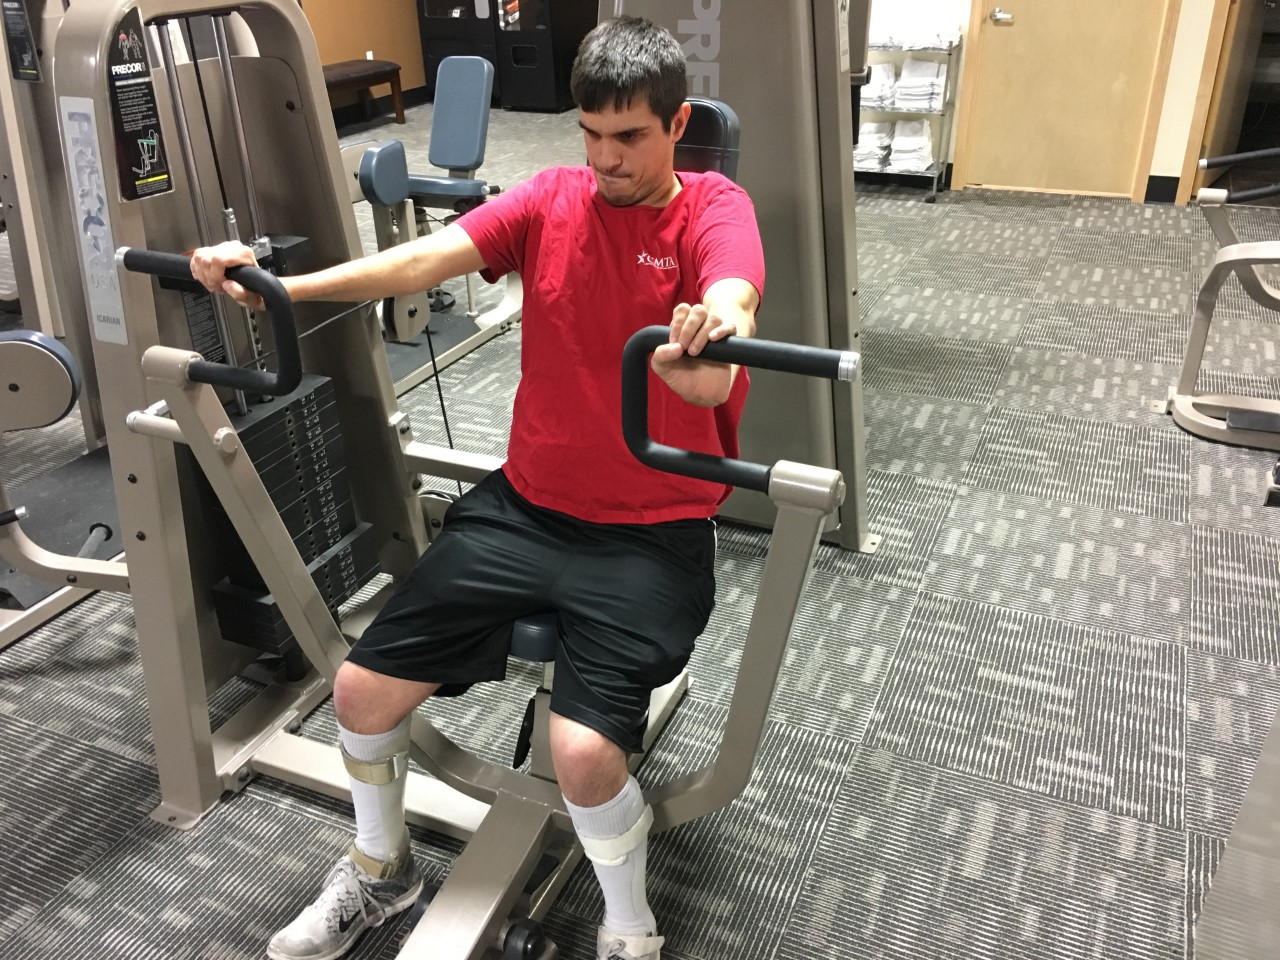 Levi Stanger works out at Anytime Fitness in Hastings.